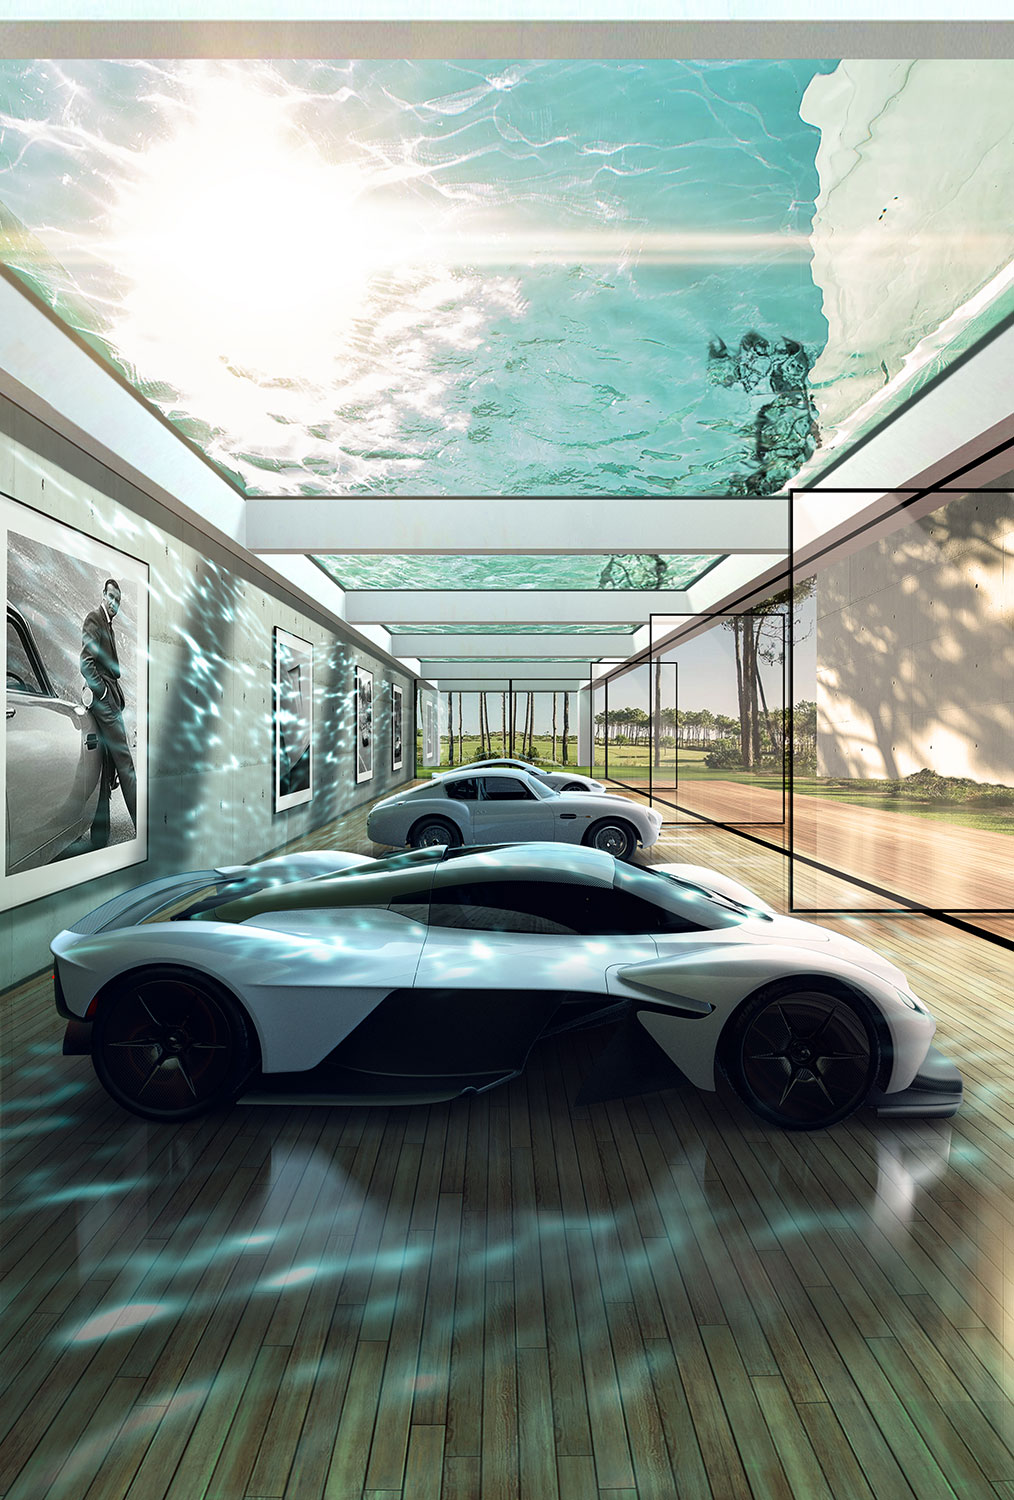 Aston Martin Automotive Galleries and Lairs- evealed at Pebble Beach | FINEST LIVING, the blog of FINEST RESIDENCES